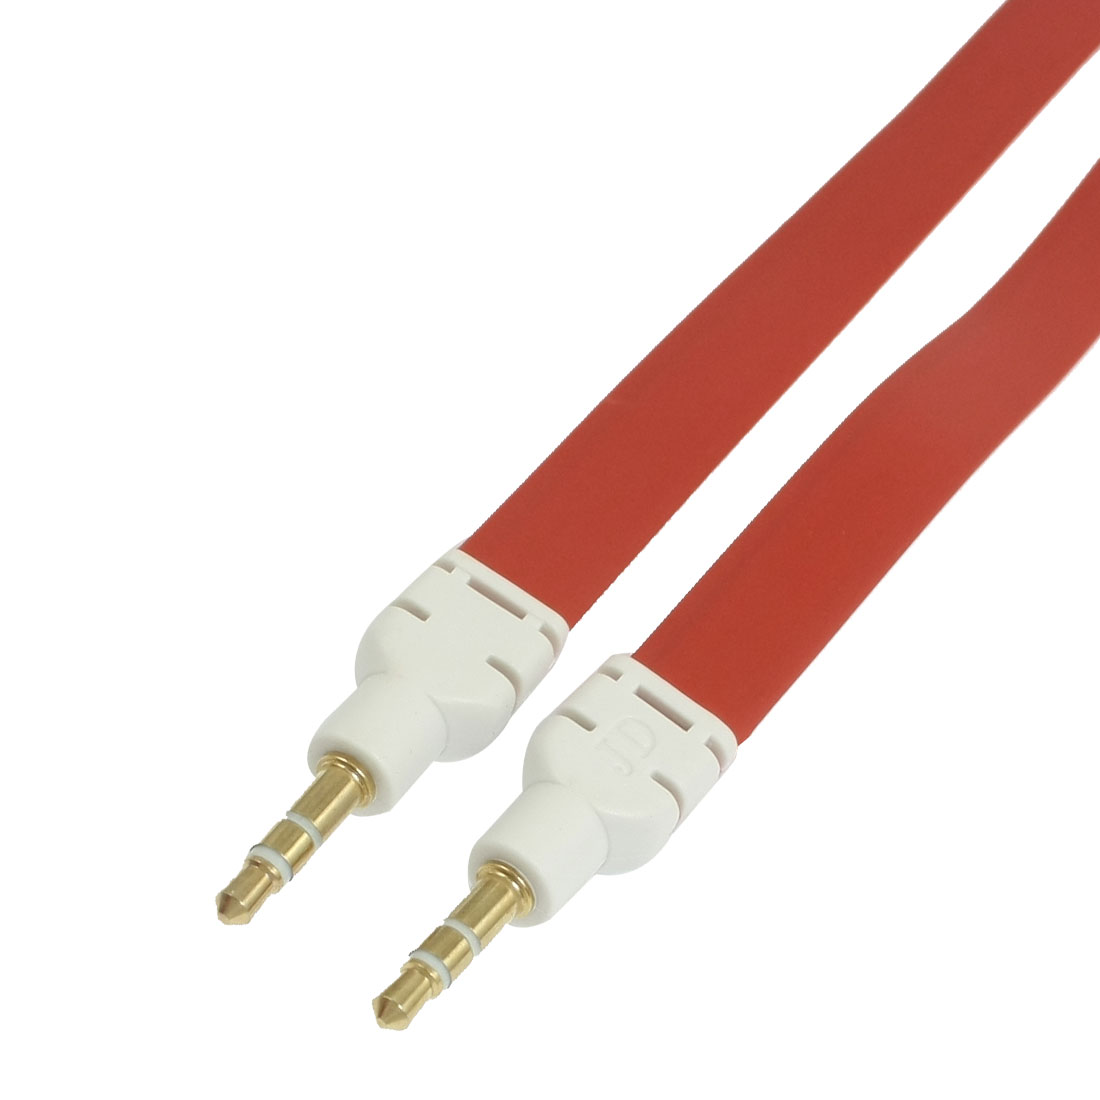 3.3Ft Long 3.5mm Male to Male Flat Audio Cable Red for MP3 MP4 Player